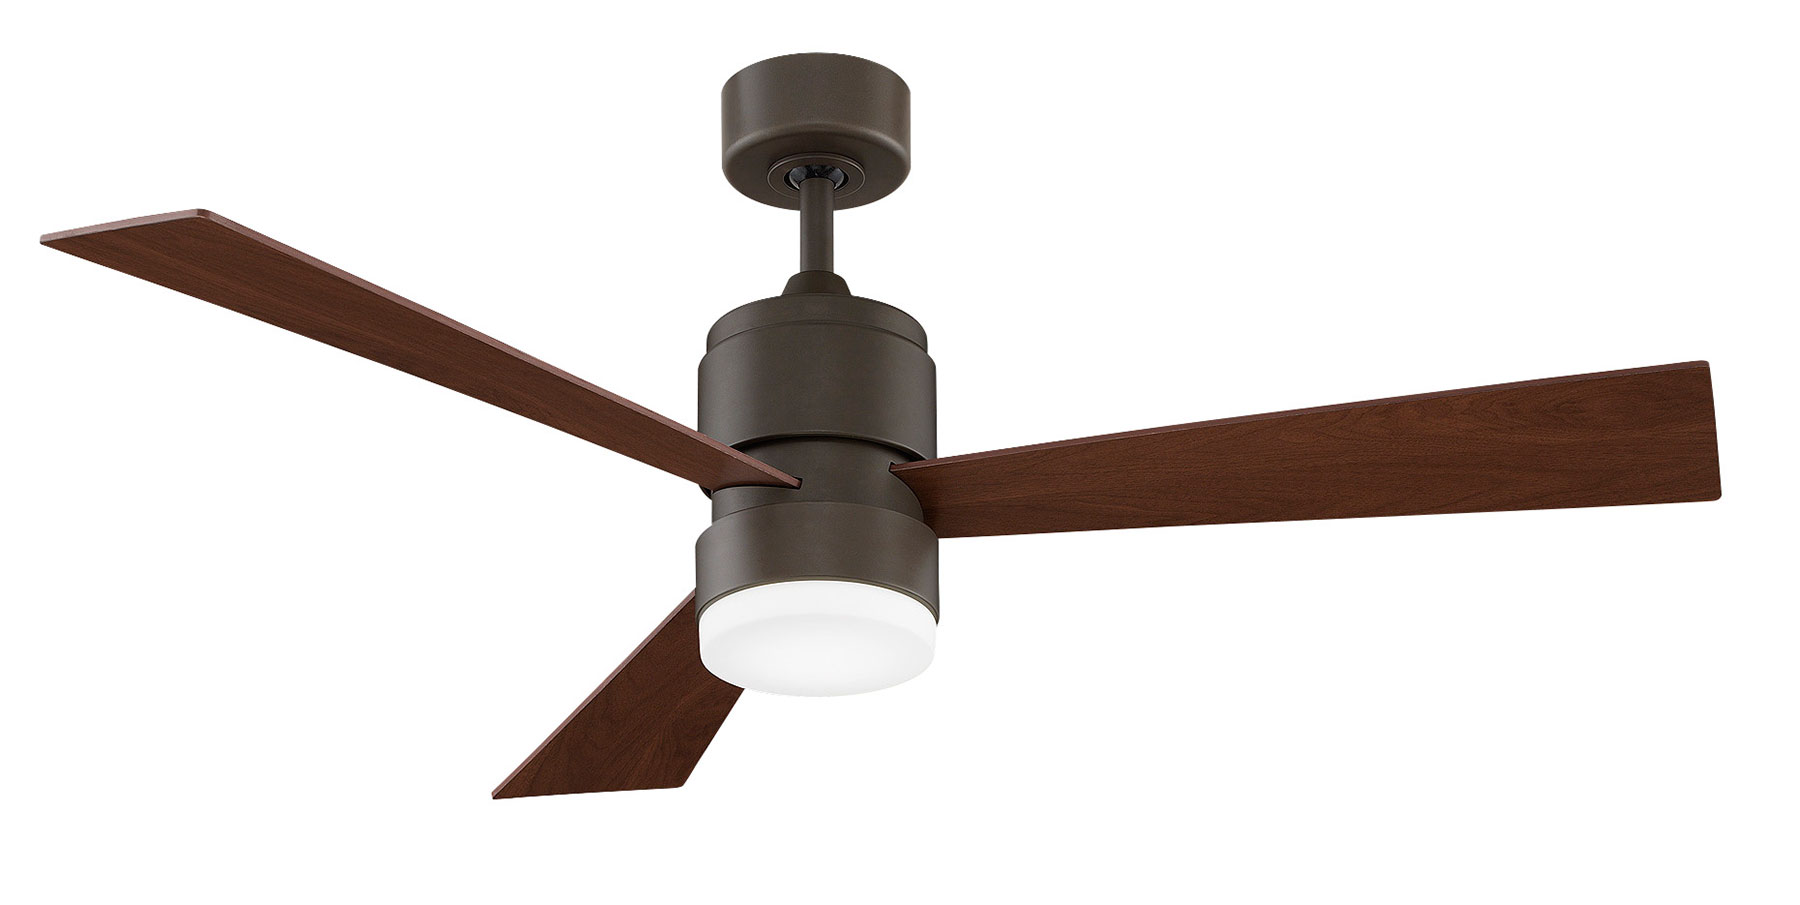 holly indoor popular profile springs contemporary low image ceiling in fans bay ceilings inside fan oil lights of led remote flush with and mount rubbed